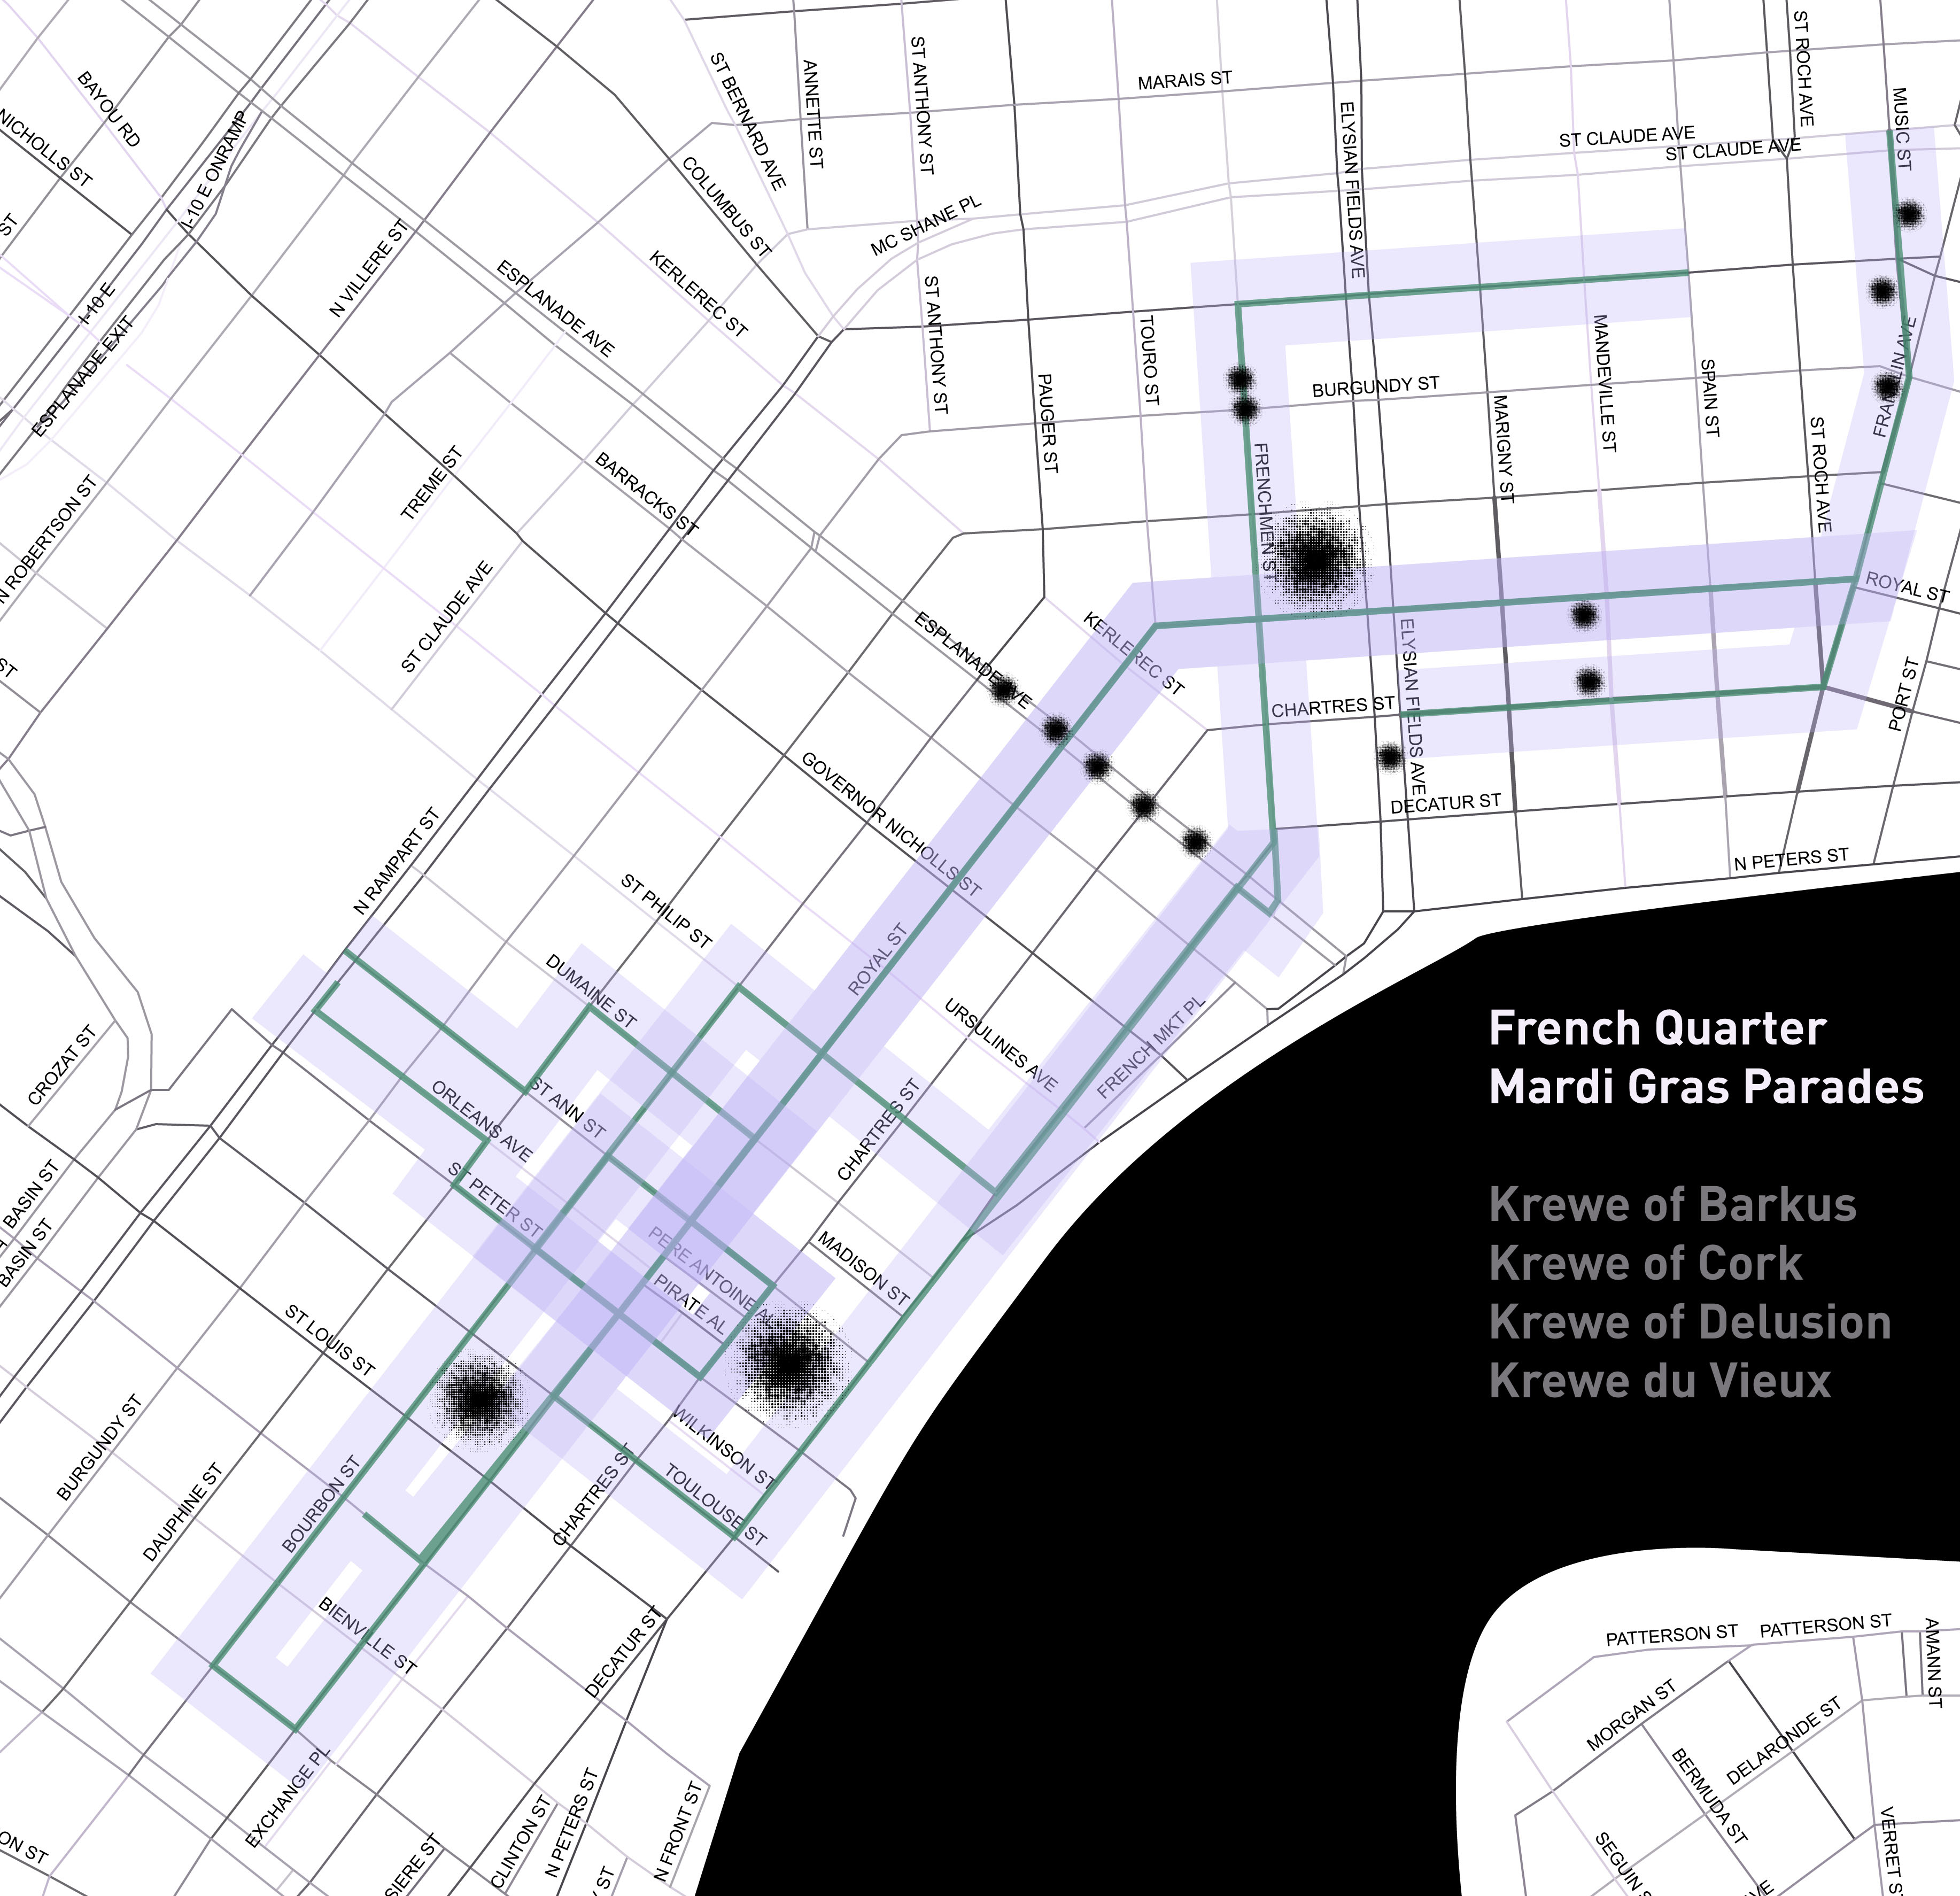 An early rendering of the parade routes in the French Quarter, with trees